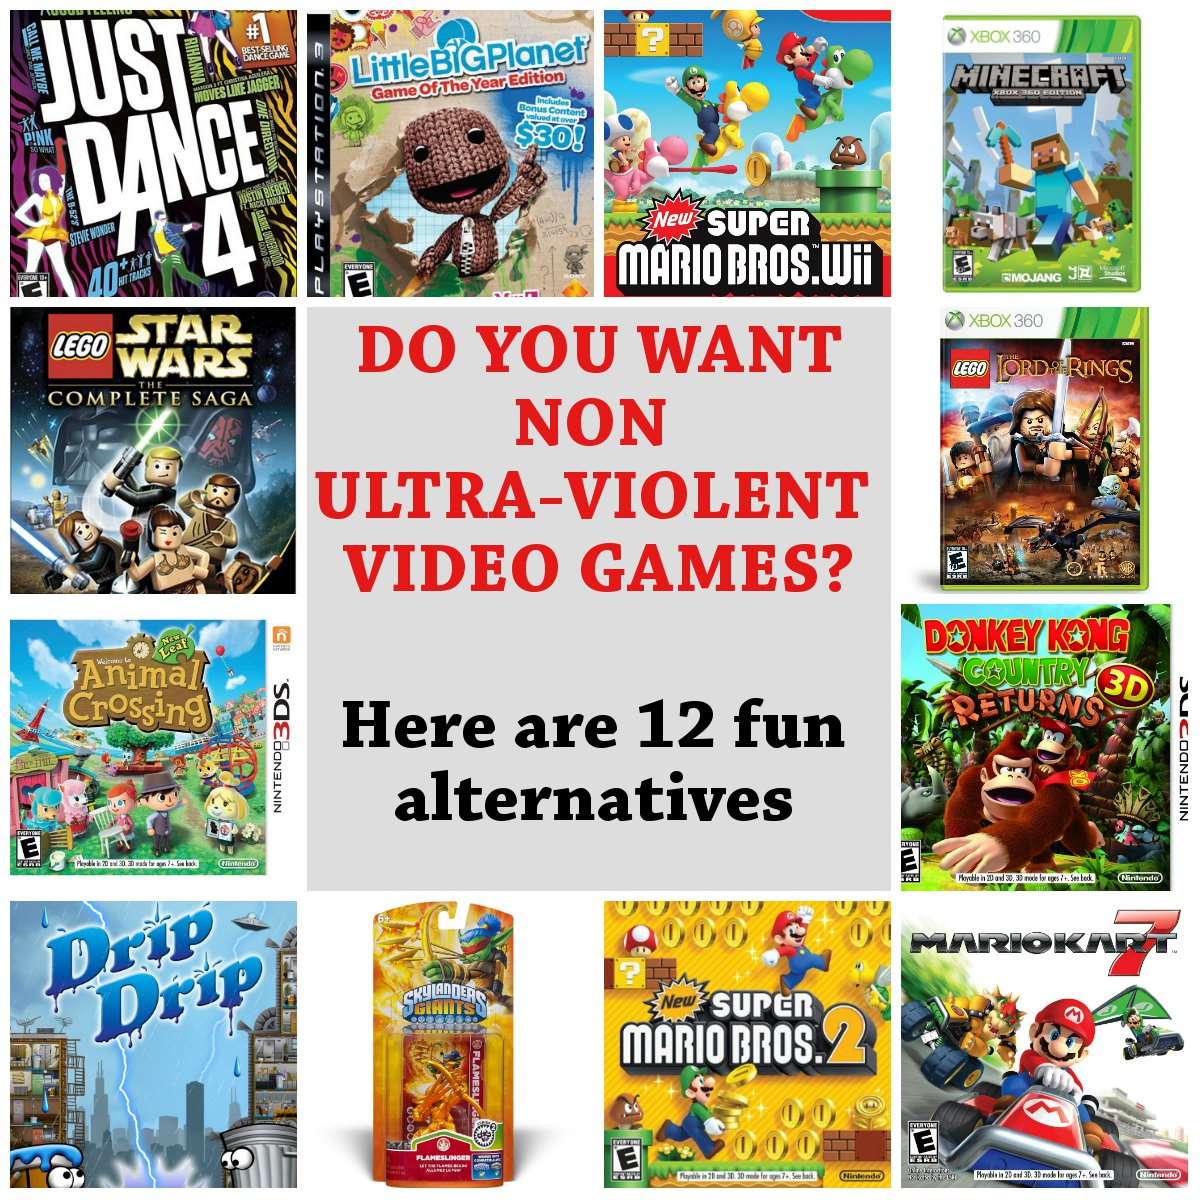 why violent video games should not Full answer the argument that violent video games should not be banned commonly takes the form of the statement that video games do not cause violence.